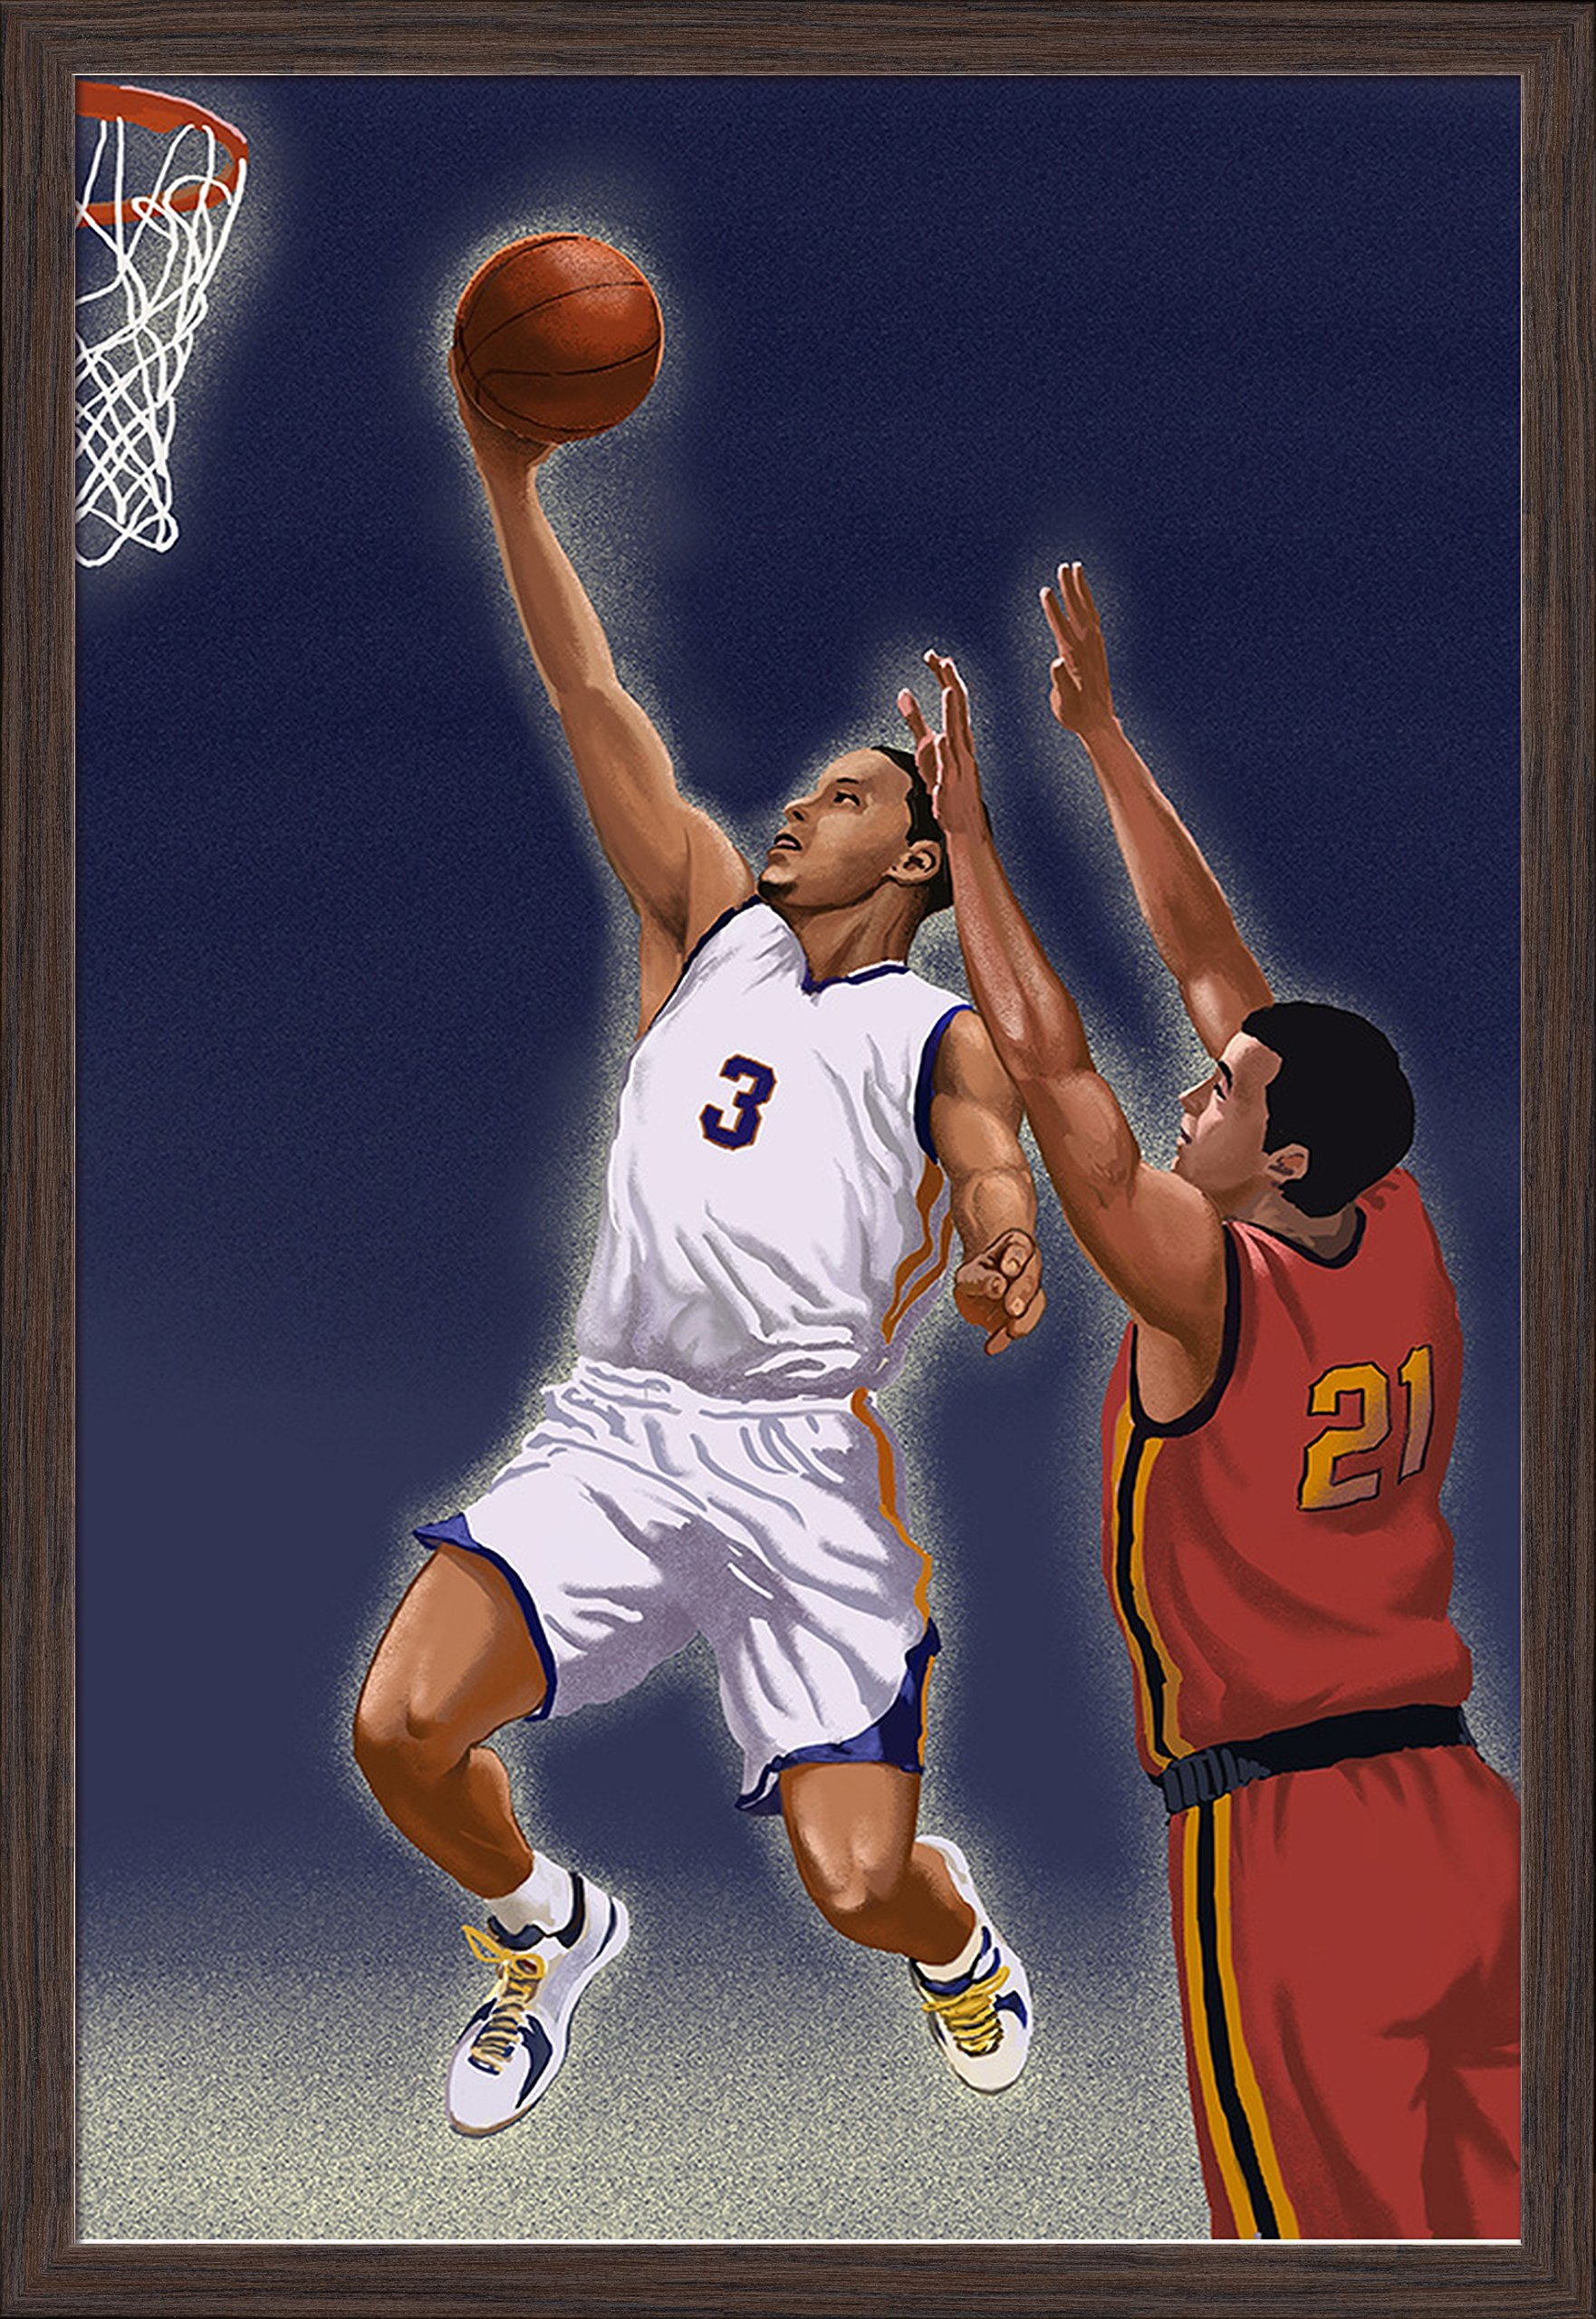 Basketball Player (24x36 Giclee Art Print, Gallery Framed, Espresso Wood)